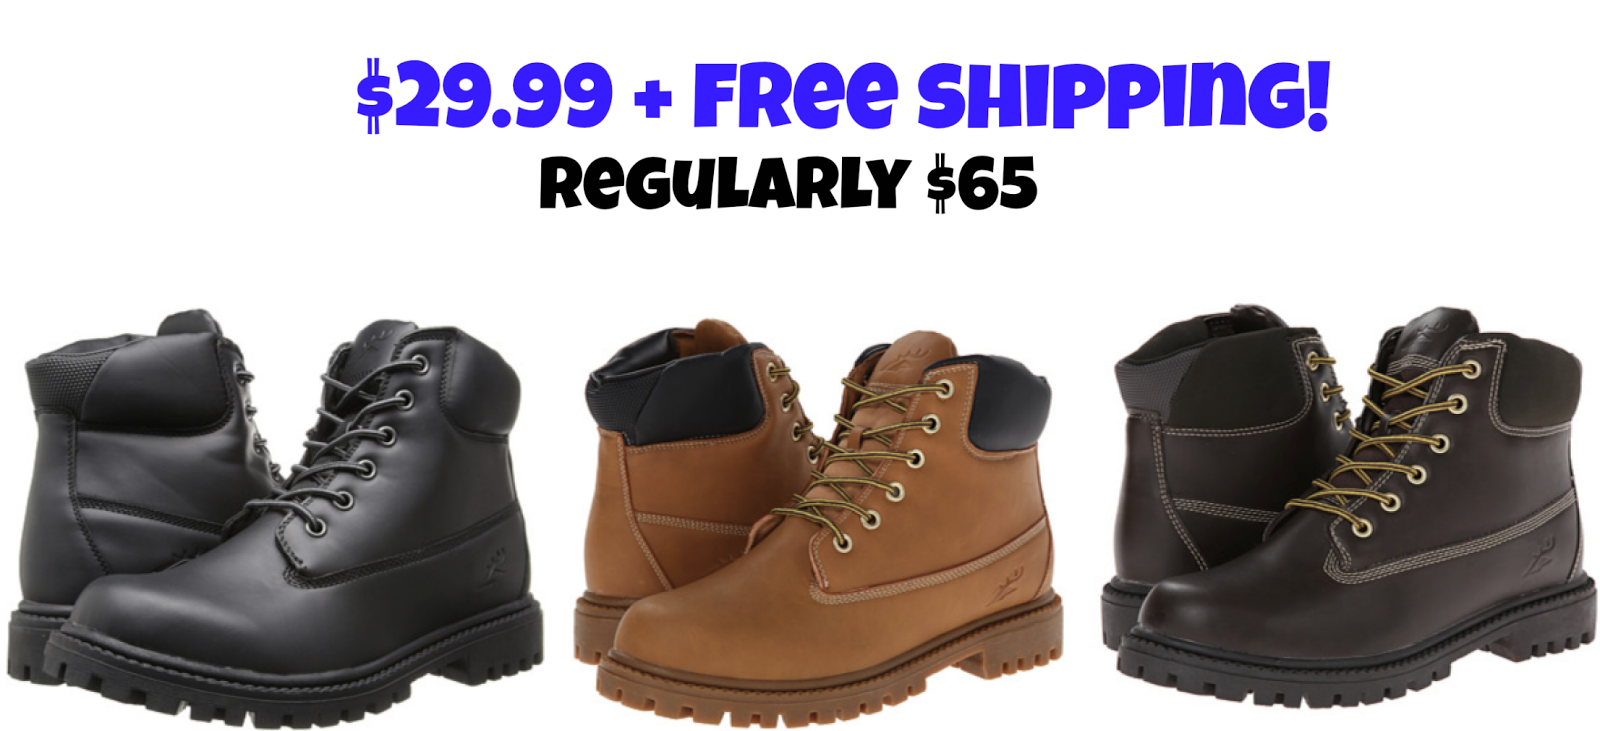 http://www.thebinderladies.com/2015/02/6pm-mens-deer-stags-pat-rugged-boots.html#.VO-1x0LduyM